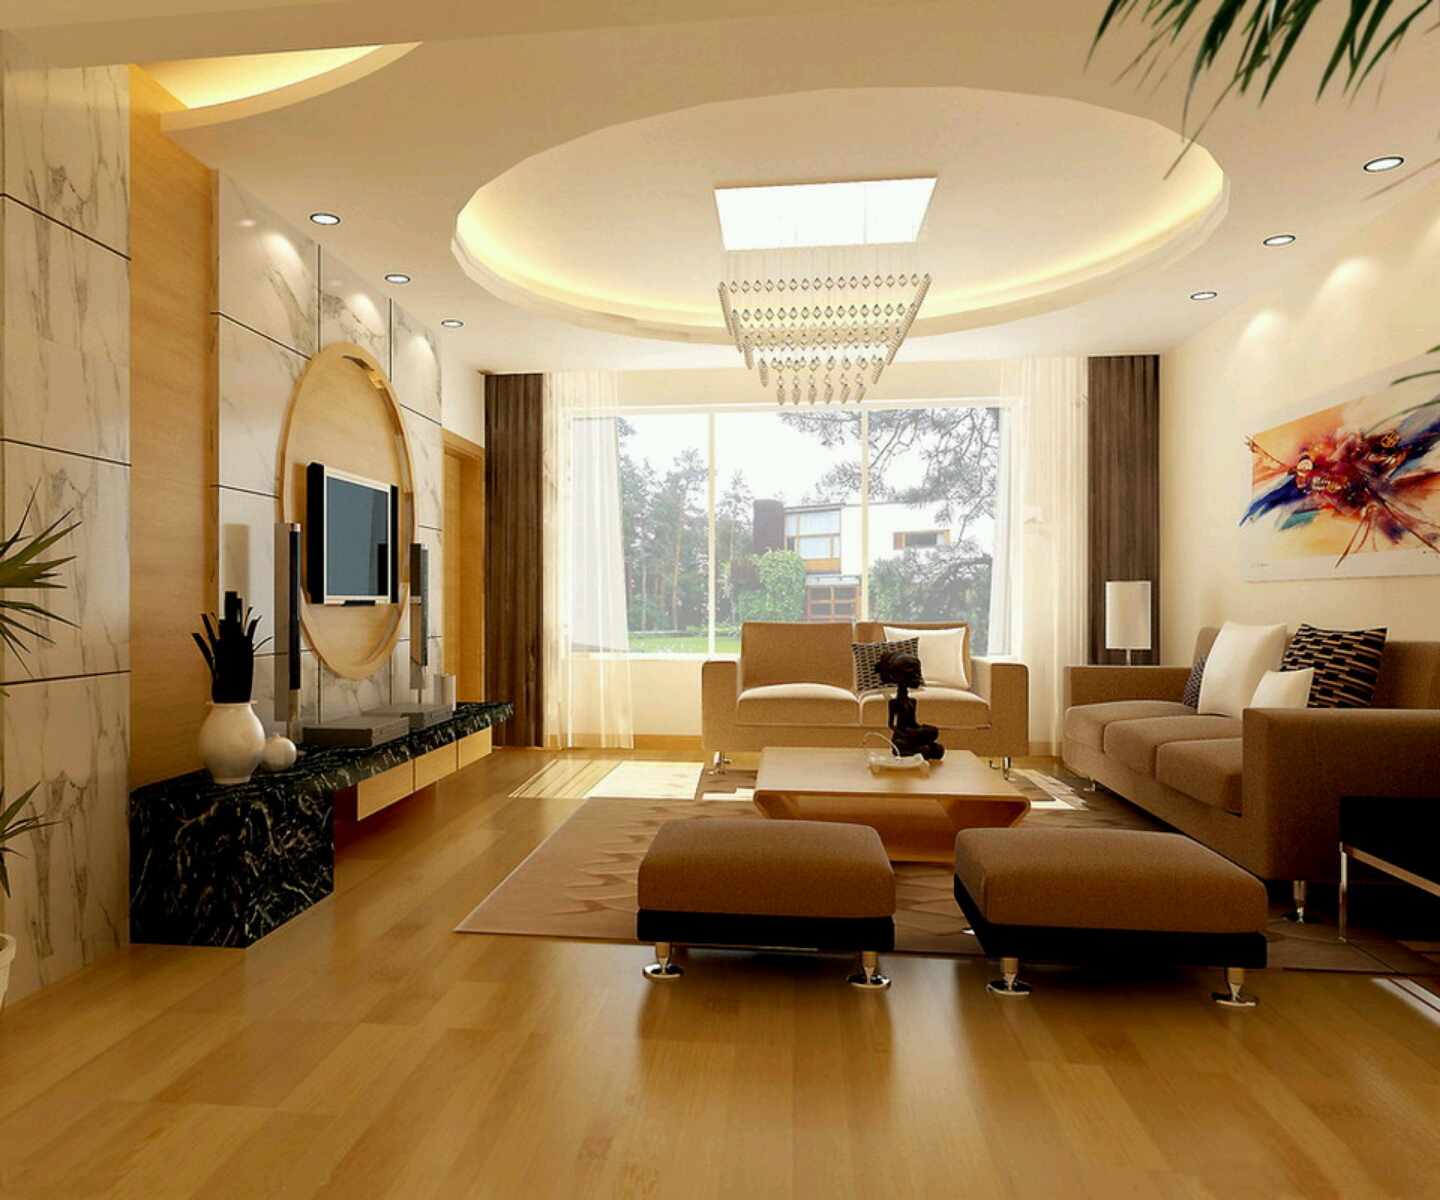 Modern interior decoration living rooms ceiling designs for Modern lounge decor ideas